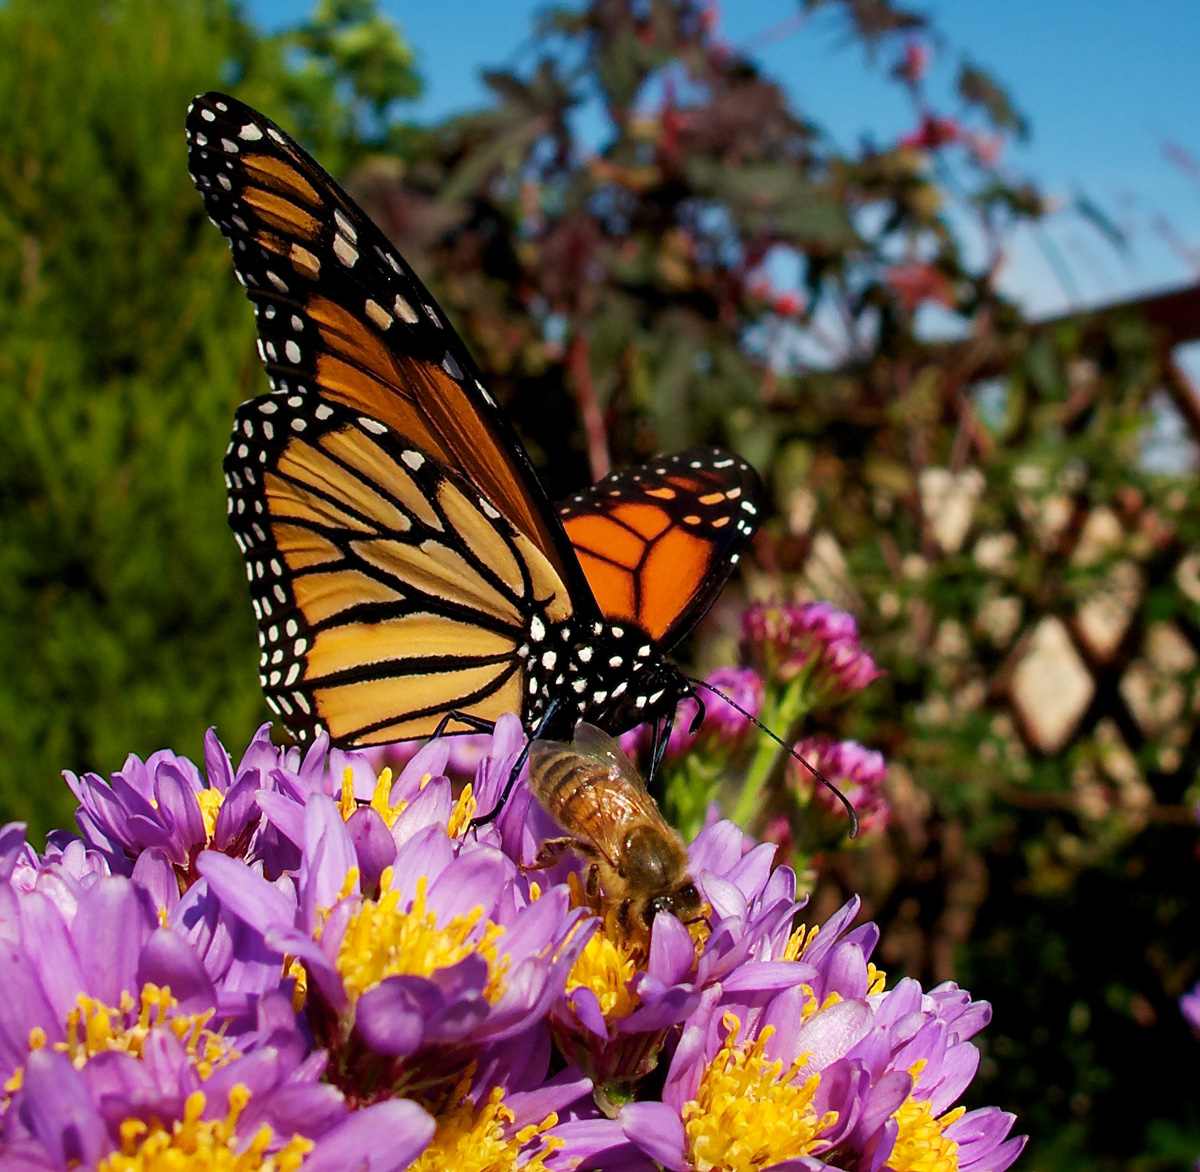 2011-10-23-Last-Monarchs-of-season-on-asters---M.Moss---2011-10-23-at-14-23-41